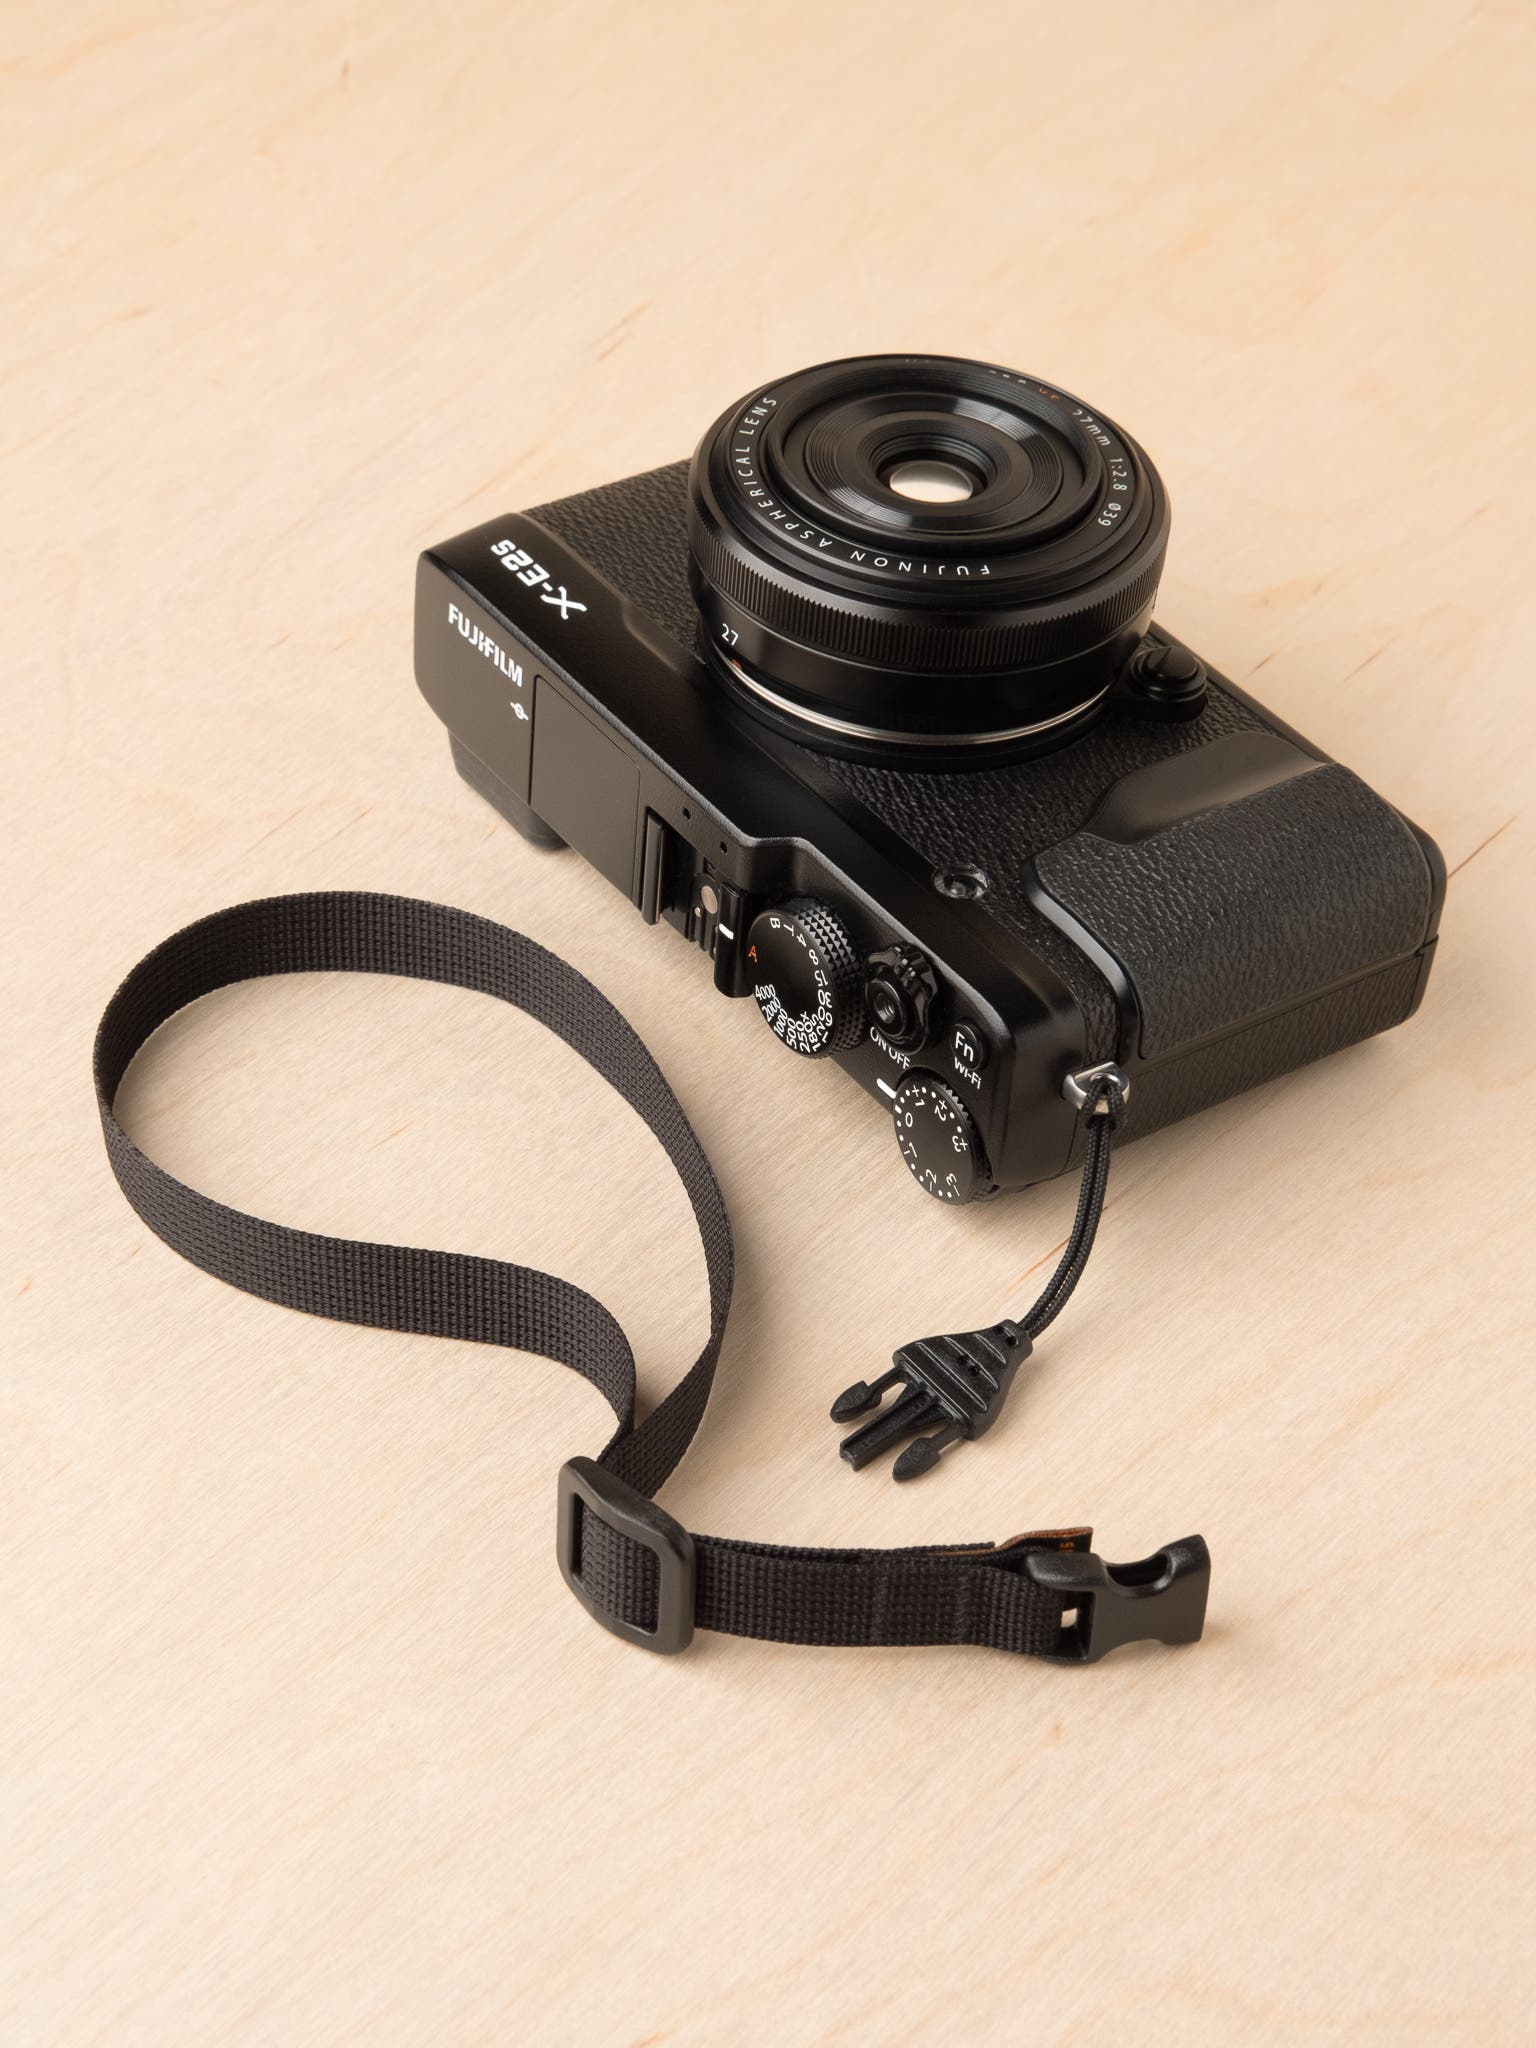 M1w Mirrorless Wrist Strap is the Simplest, No-Nonsense Strap for Mirrorless Cameras